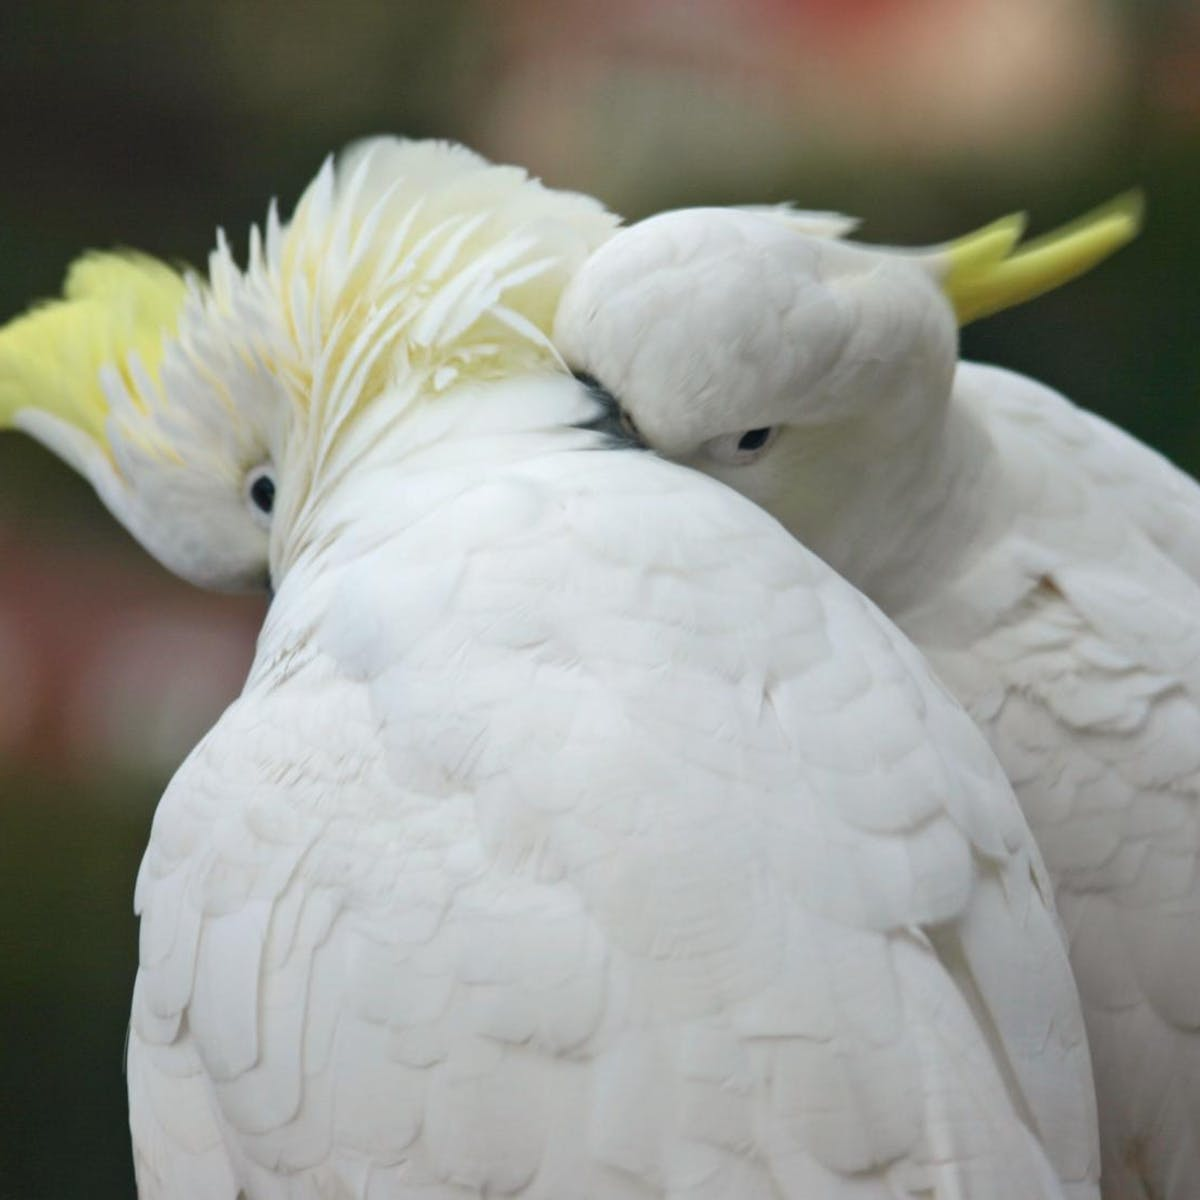 Laughs, cries and deception: birds' emotional lives are just as